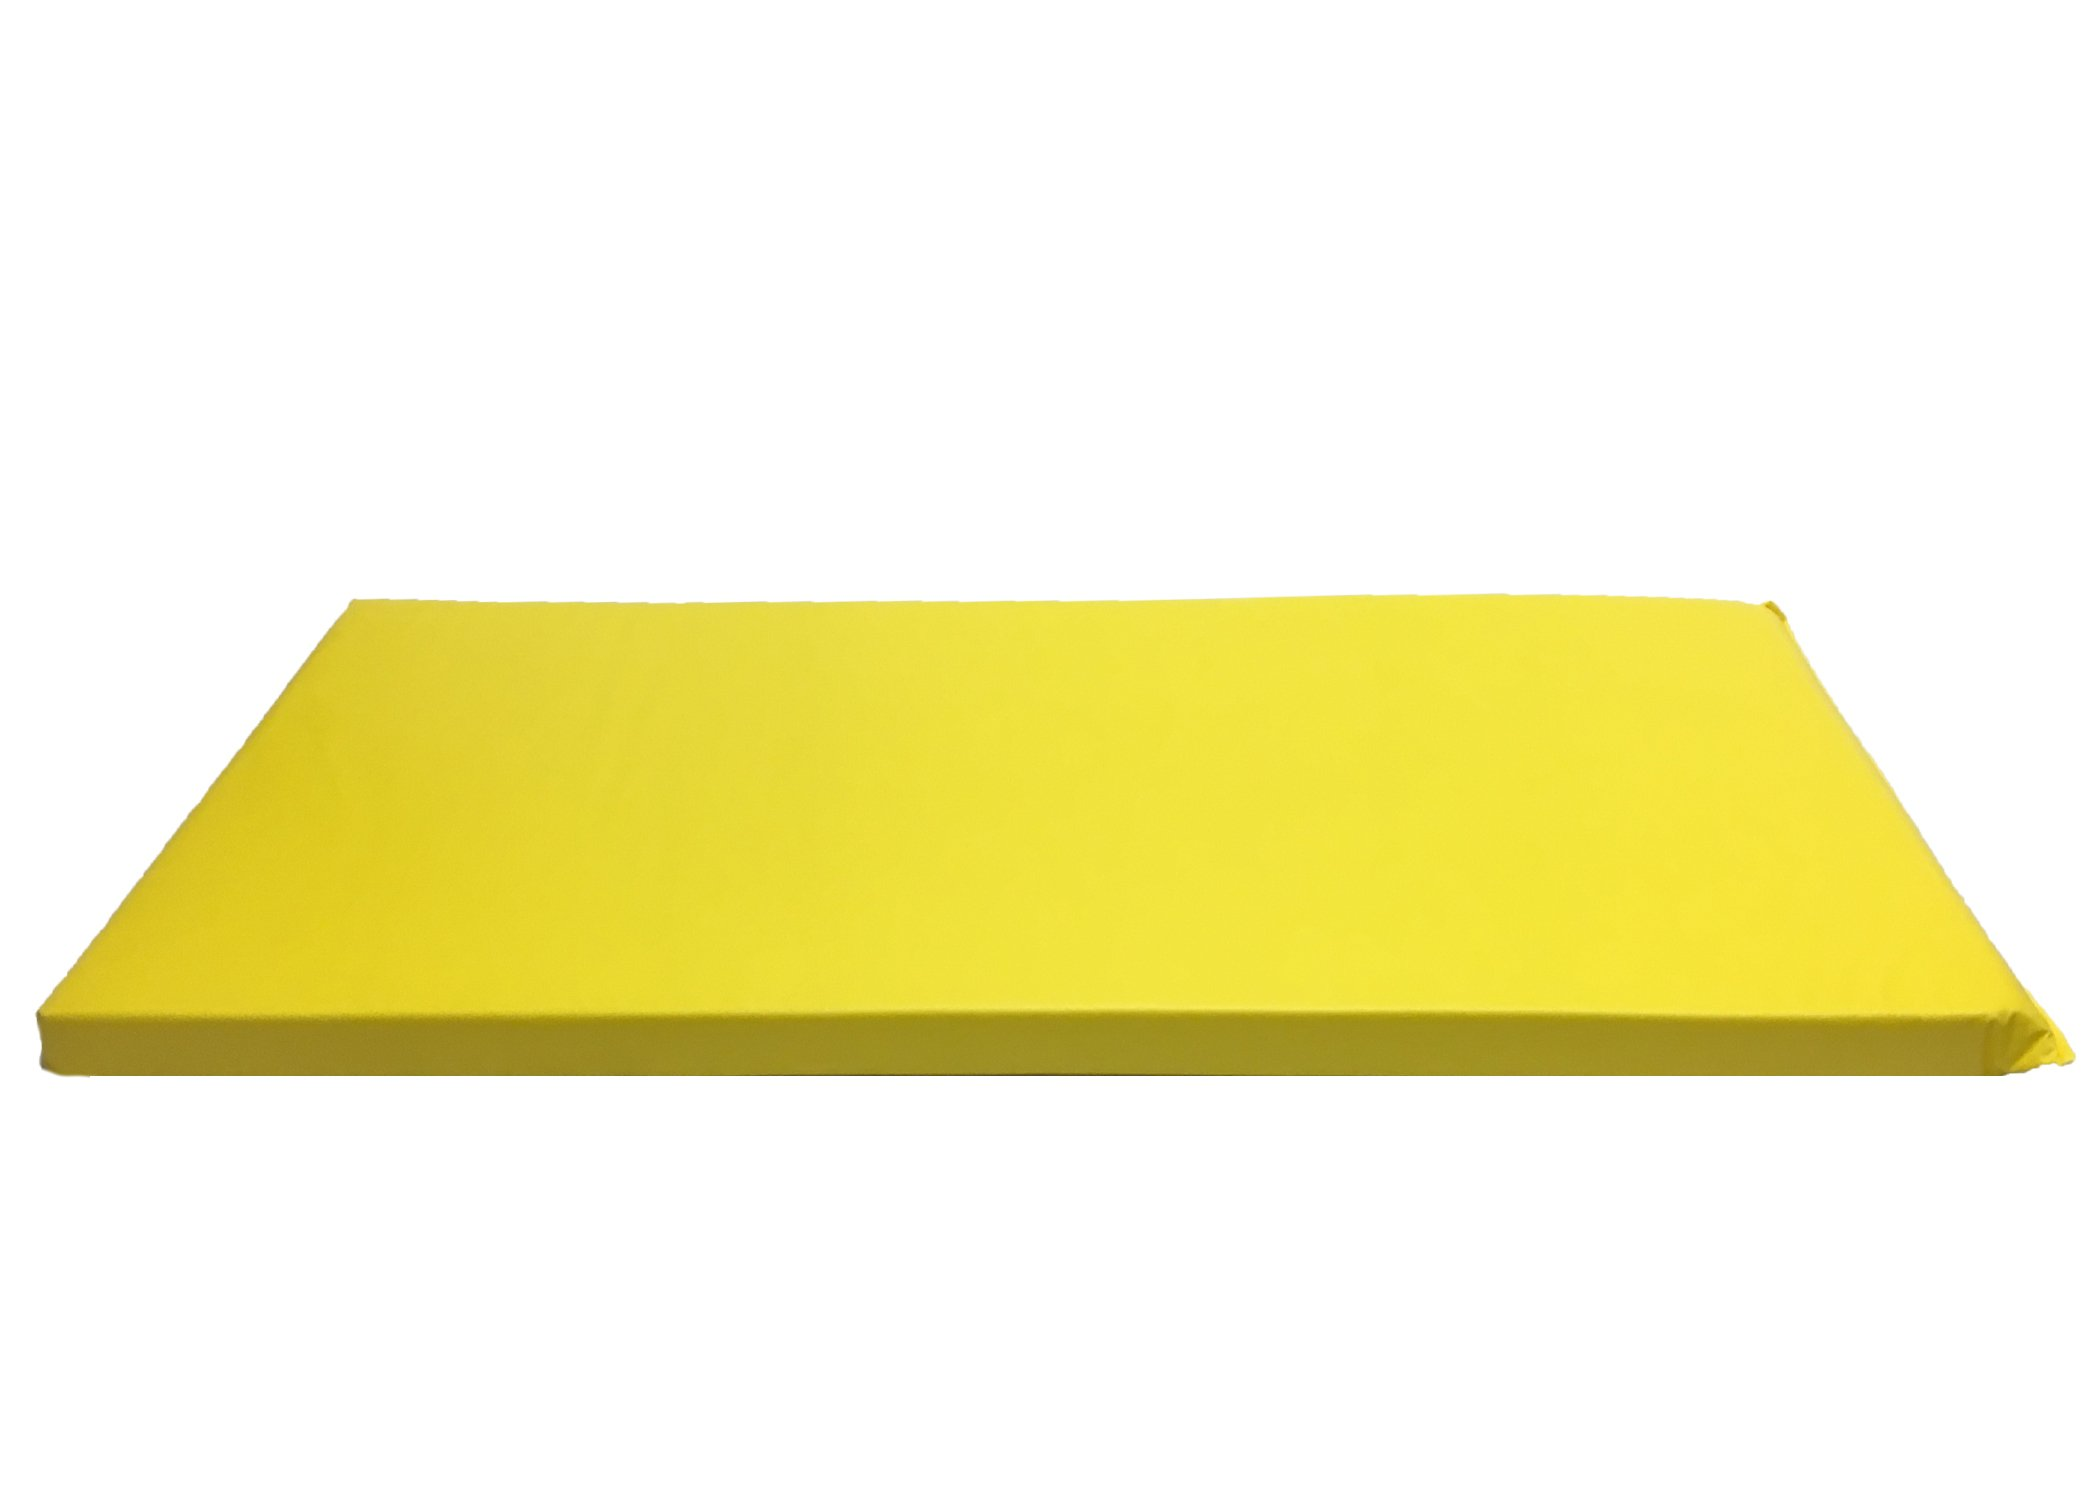 KinderMat, Rainbow Designer Mat, Yellow, 2-Inch Thick Rest Mat